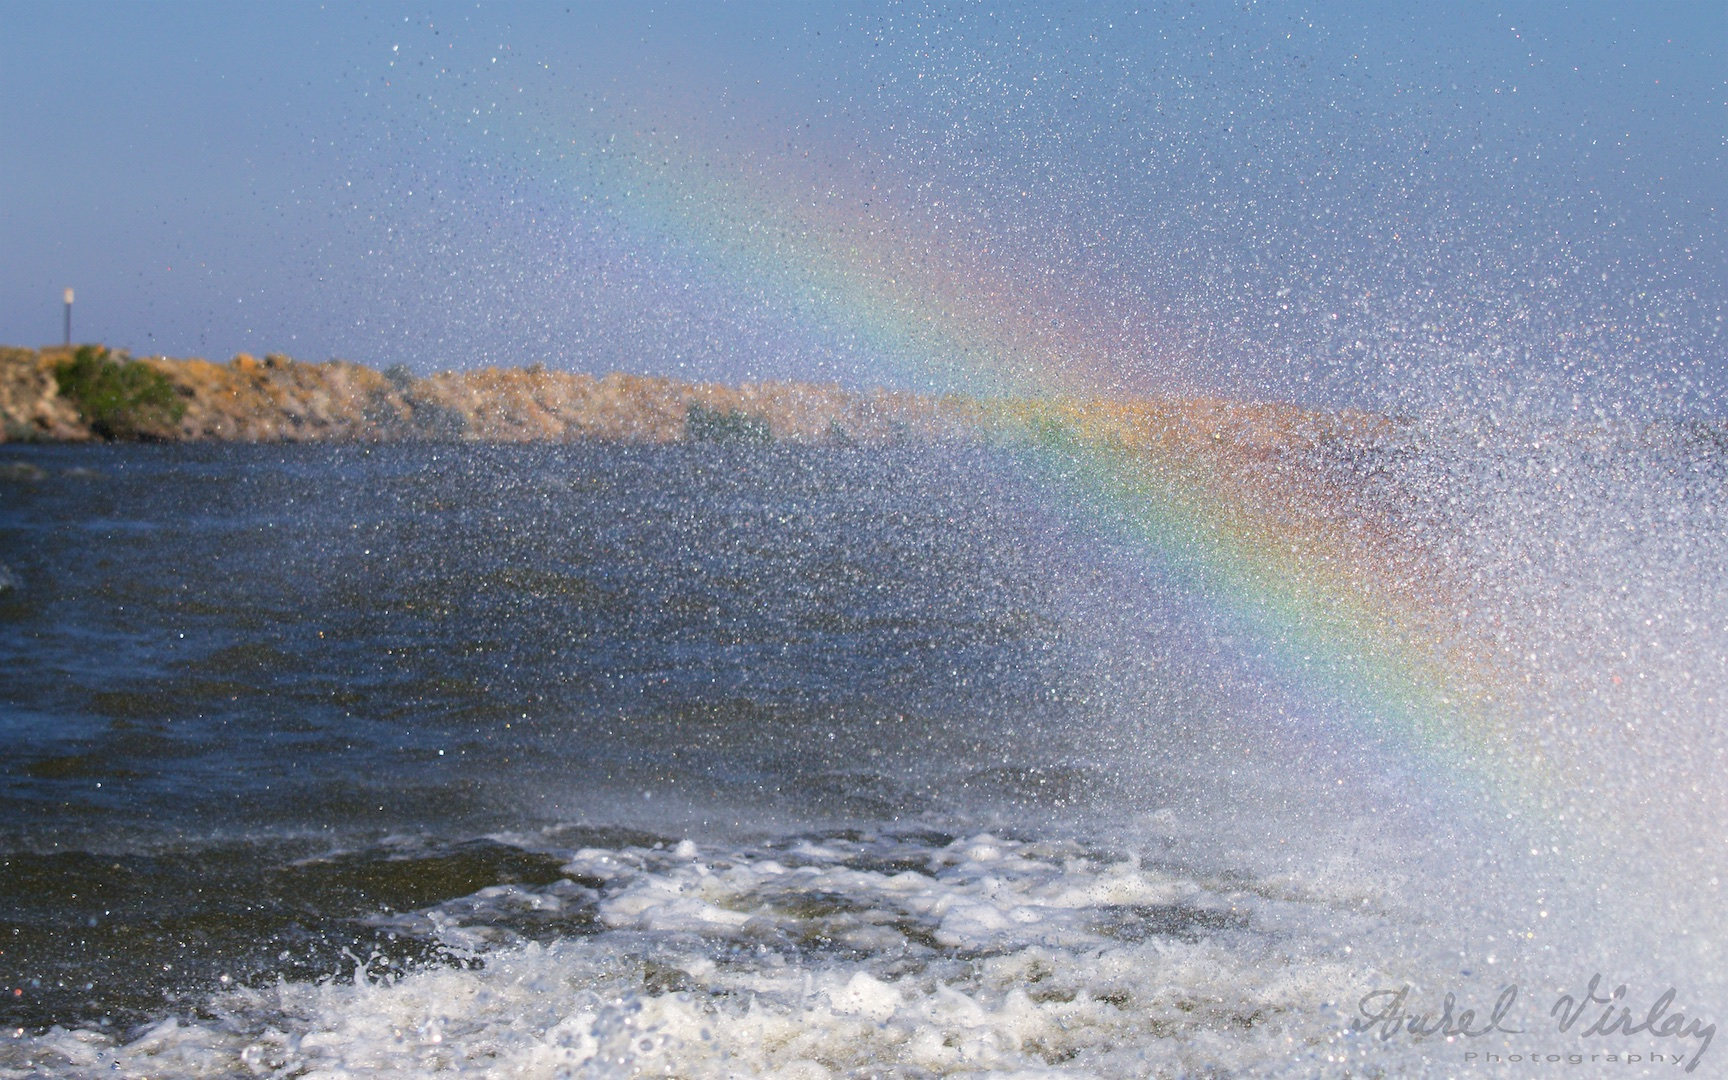 The rainbow that follows the teams of photographers at the workshop.